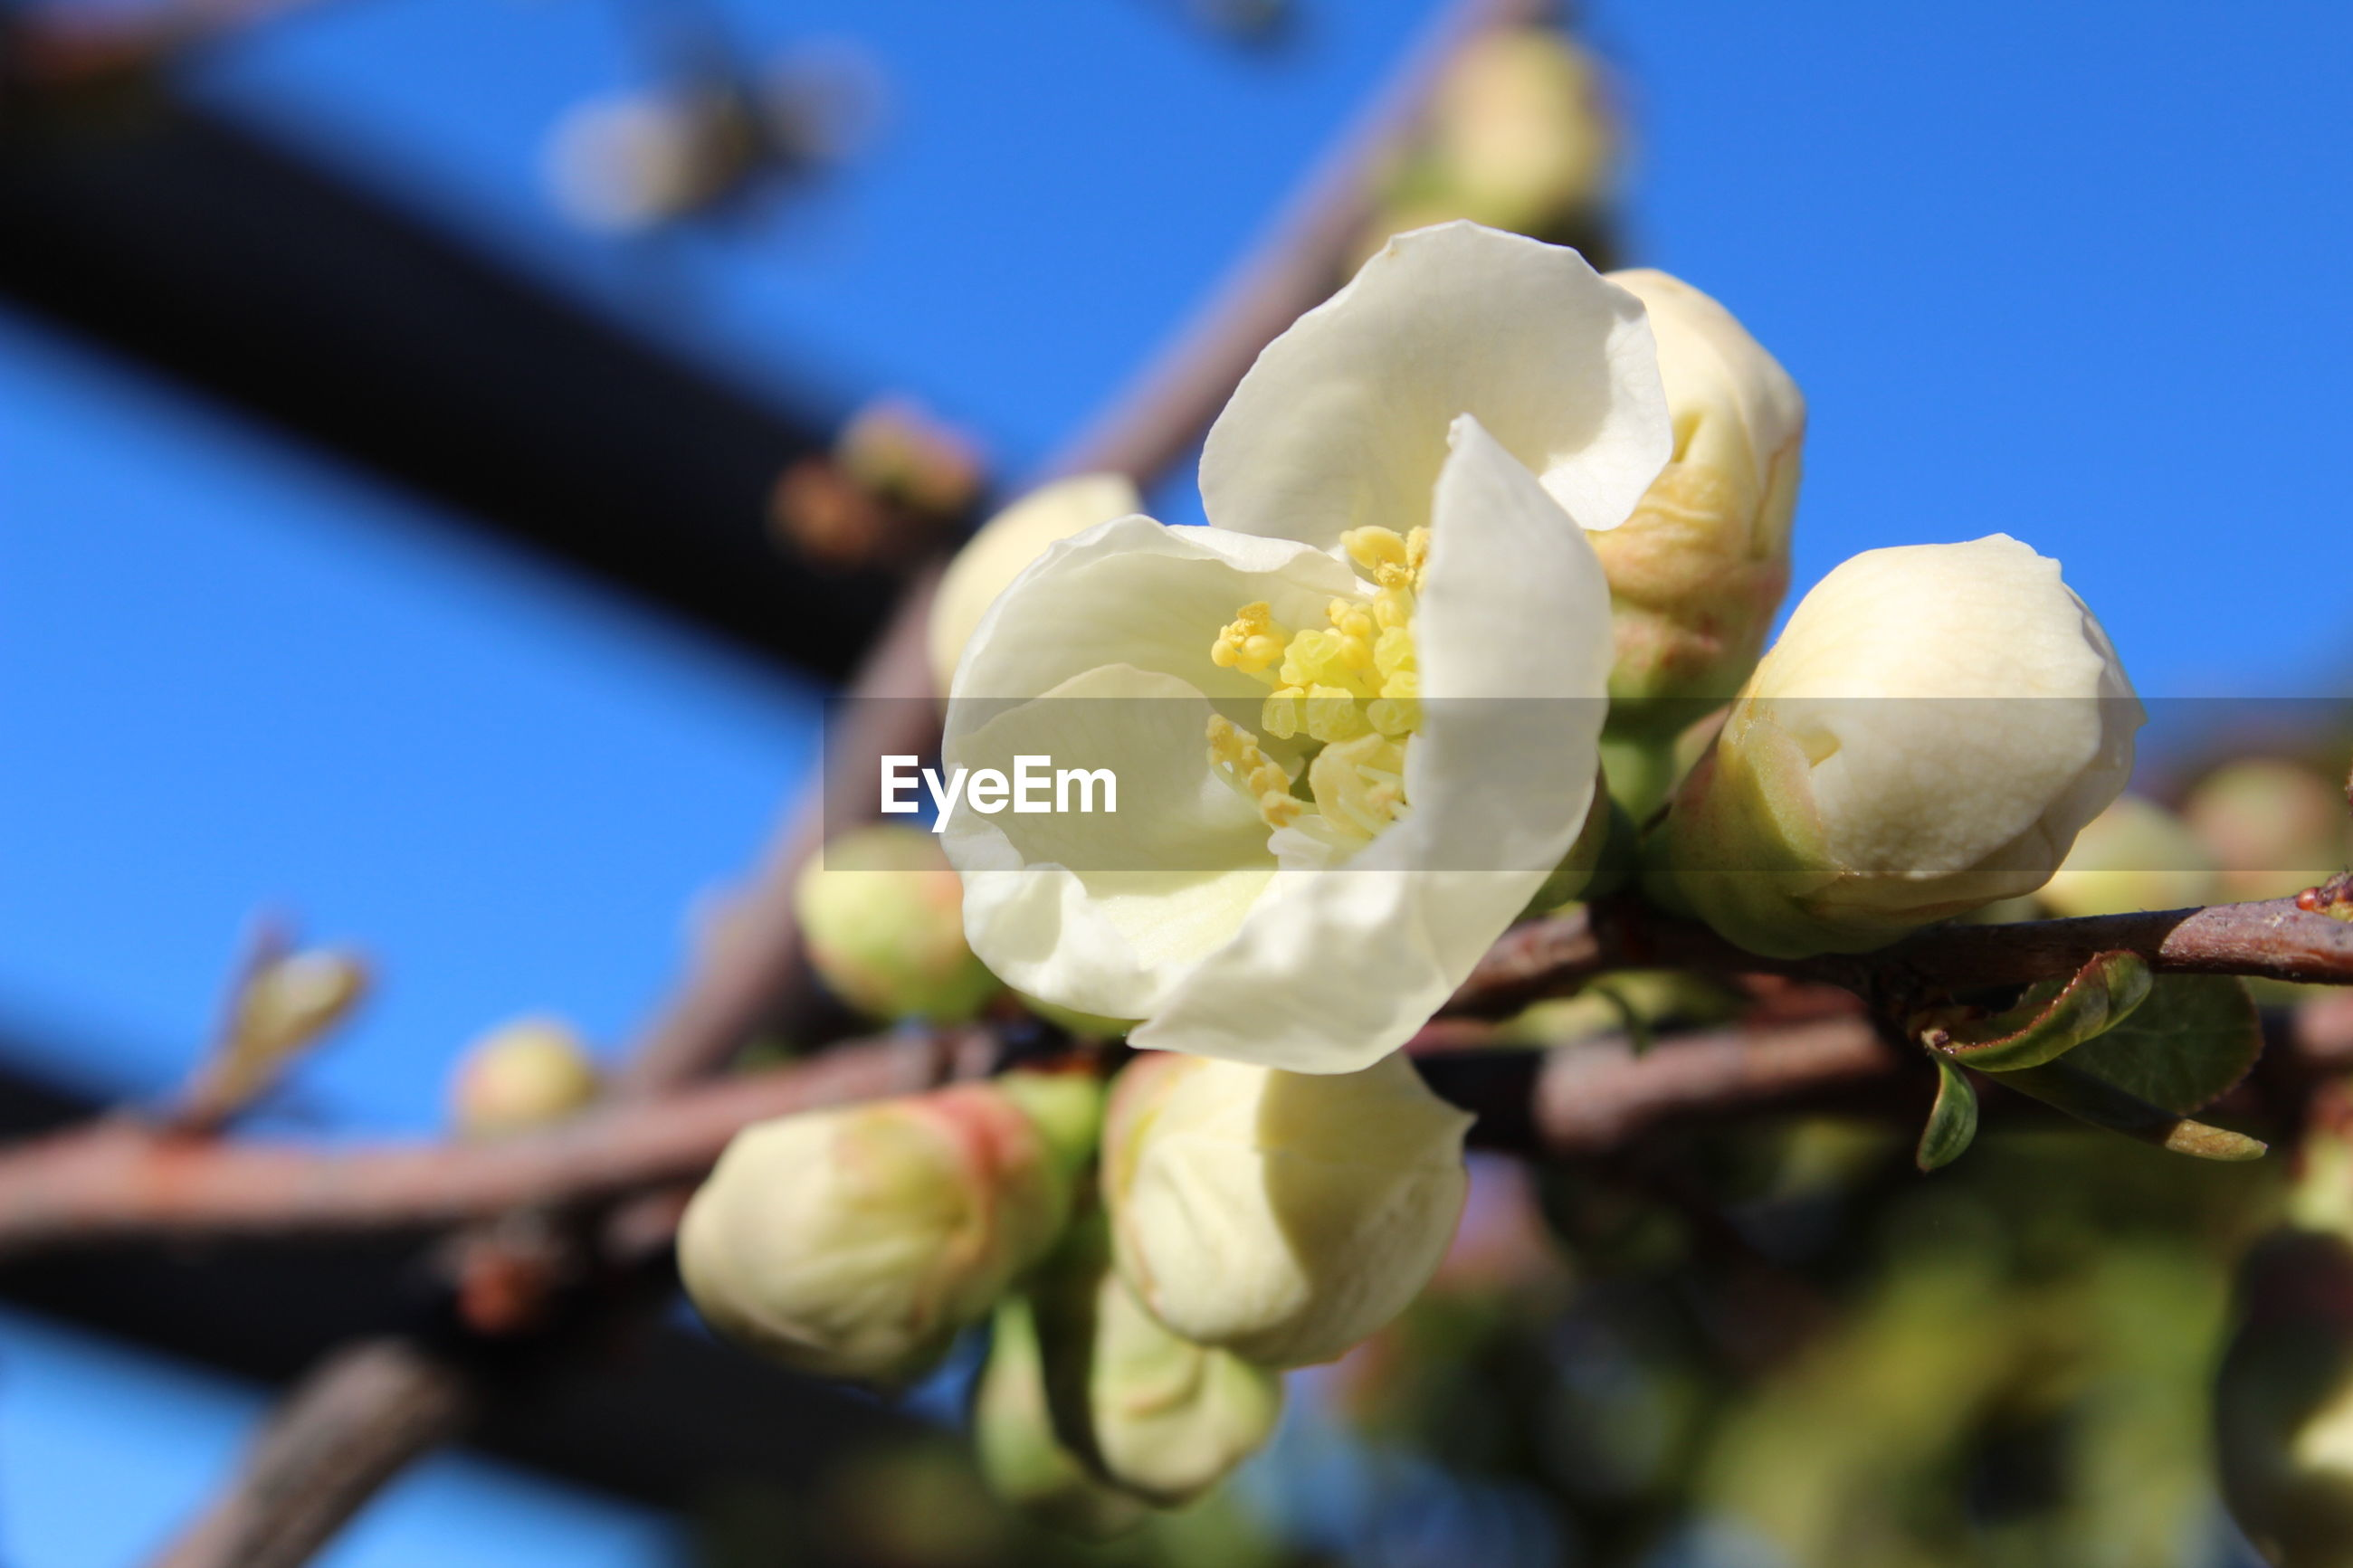 flower, fragility, nature, growth, blue, beauty in nature, freshness, close-up, petal, sunlight, springtime, blossom, flower head, no people, plant, blooming, outdoors, day, sky, plum blossom